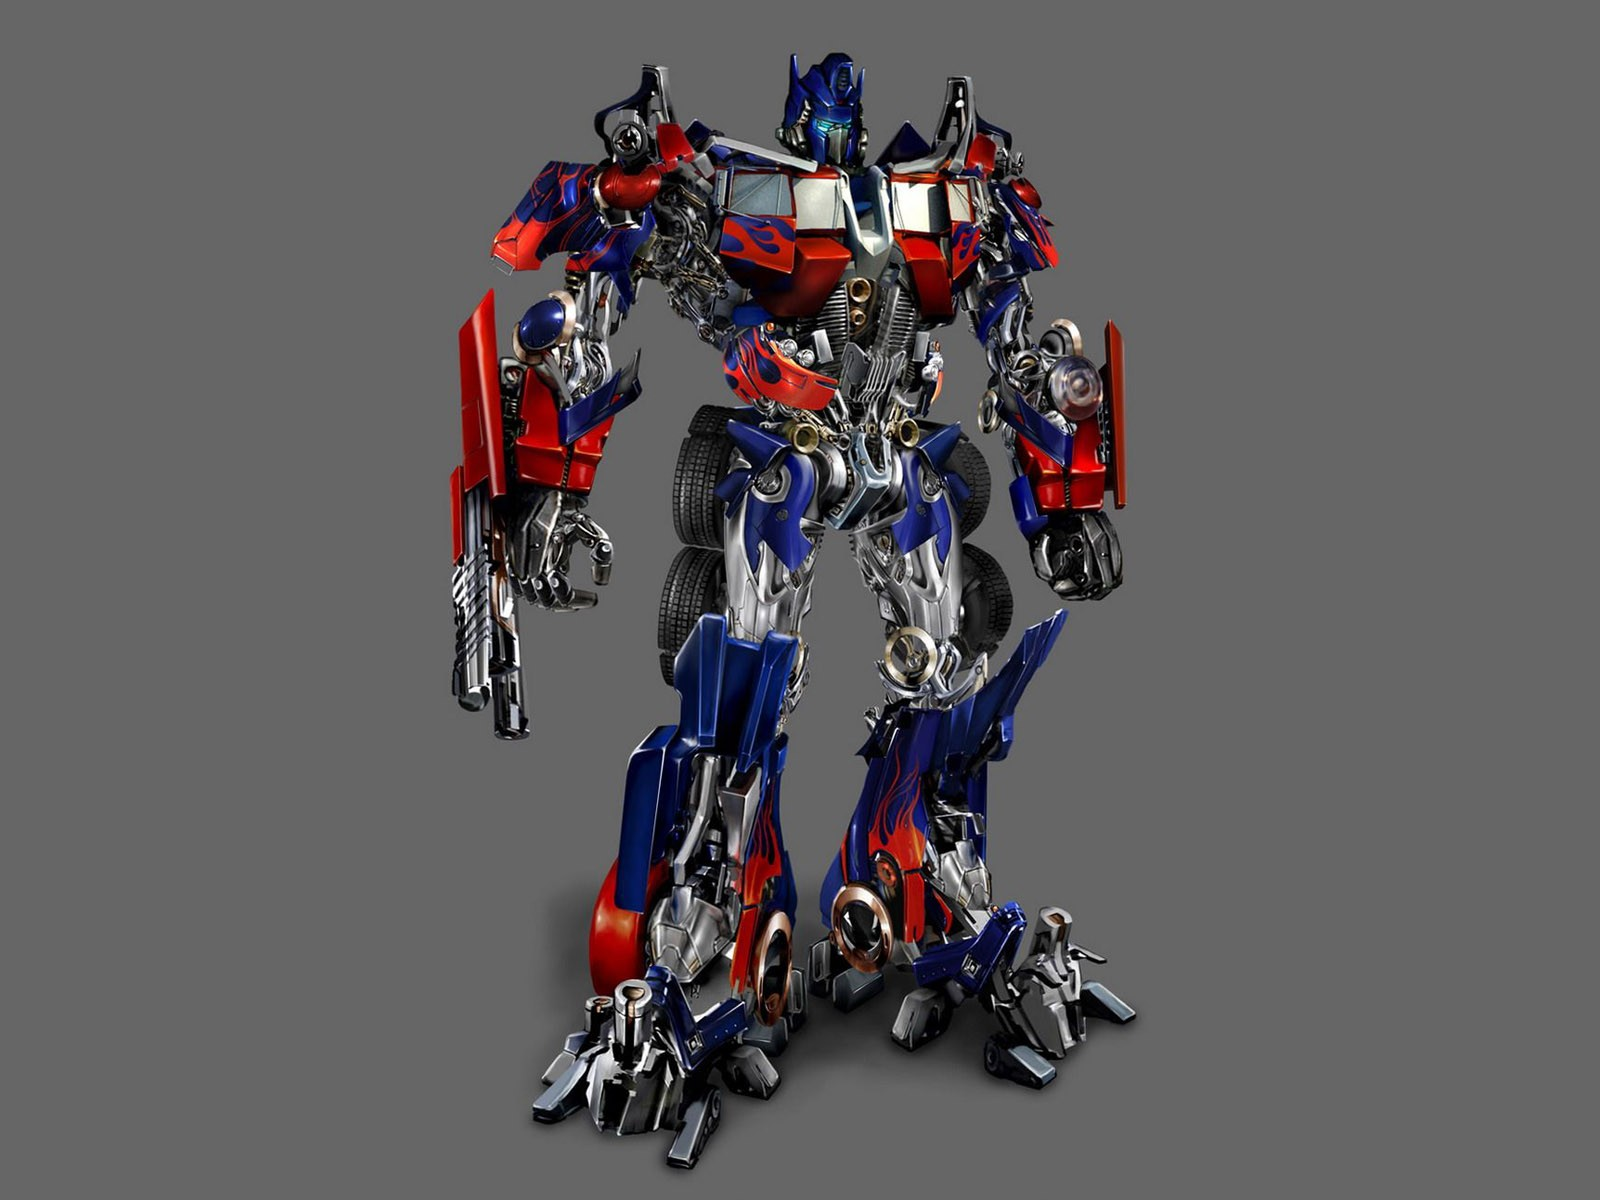 images transformers 1 transformers - movies movies